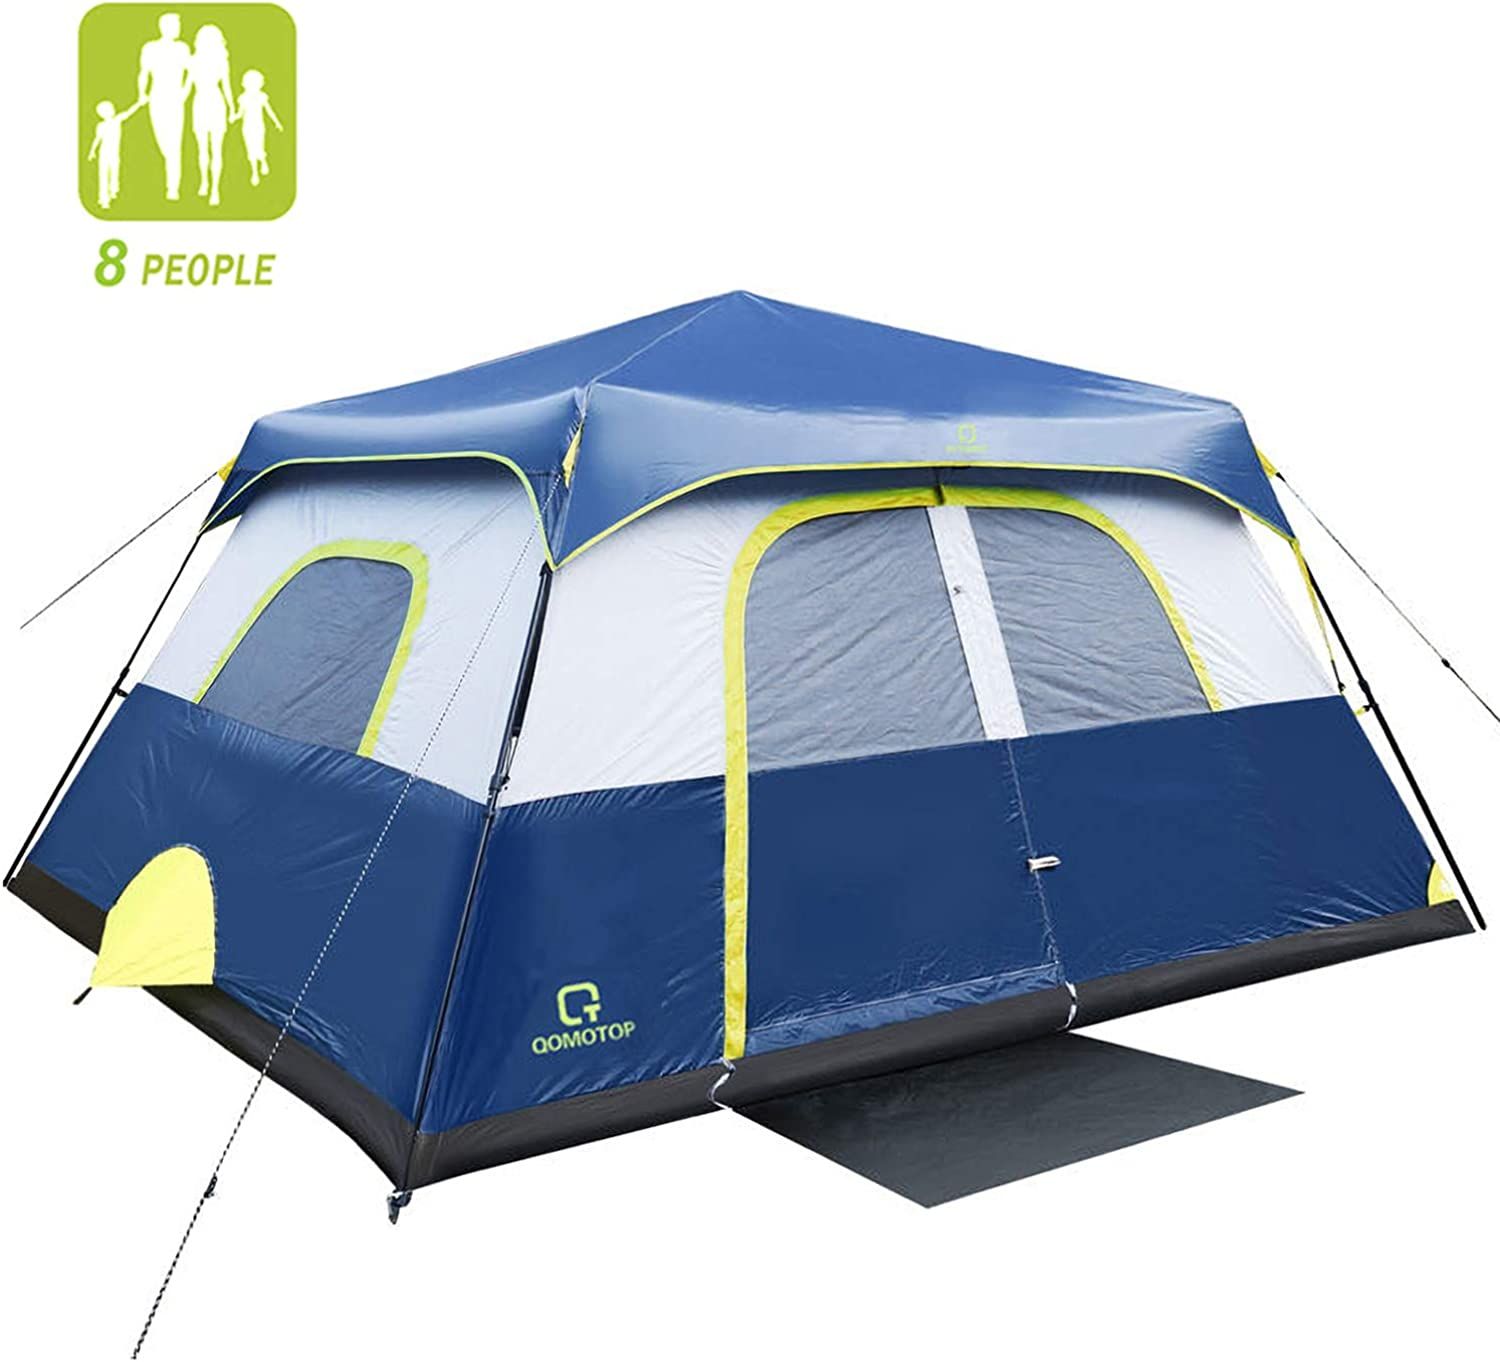 QOMOTOP Camping Tents, 4 6 8 10 Person Instant Set Up Within 1 Minute Tent Equipped with Rainfly and Carry Bag, Water-Proof Pop up Tent with Electric Cord Acess